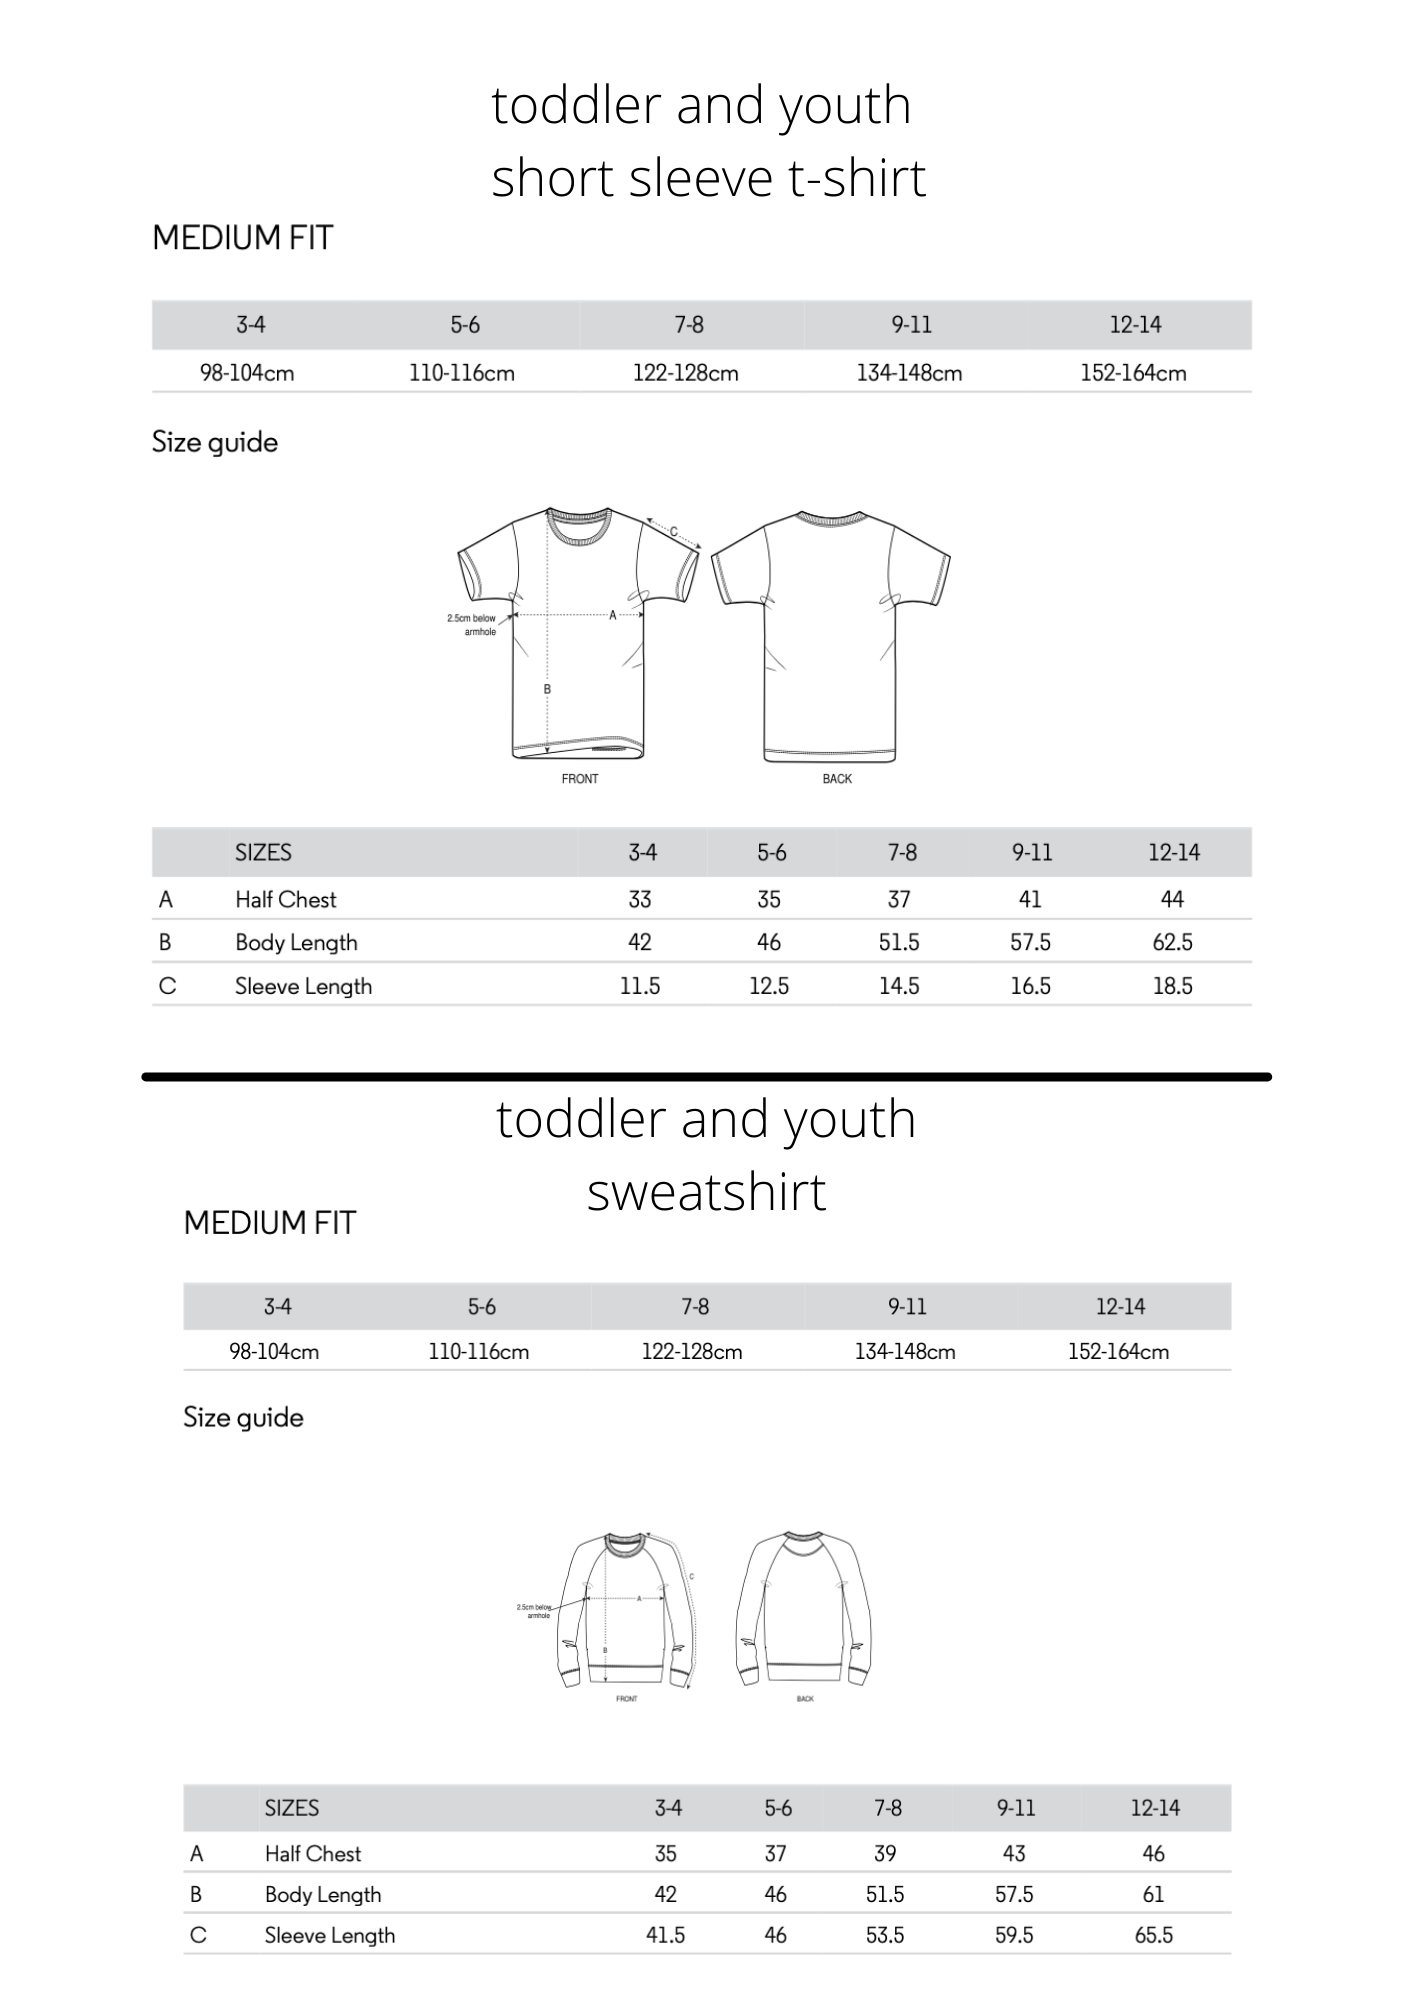 little mate adventures sizing and measurements for baby, toddler, and youth t-shirts, bodysuits, hoodie sweatshirts, sweatshirts, leggings, sweatpants, breton tops